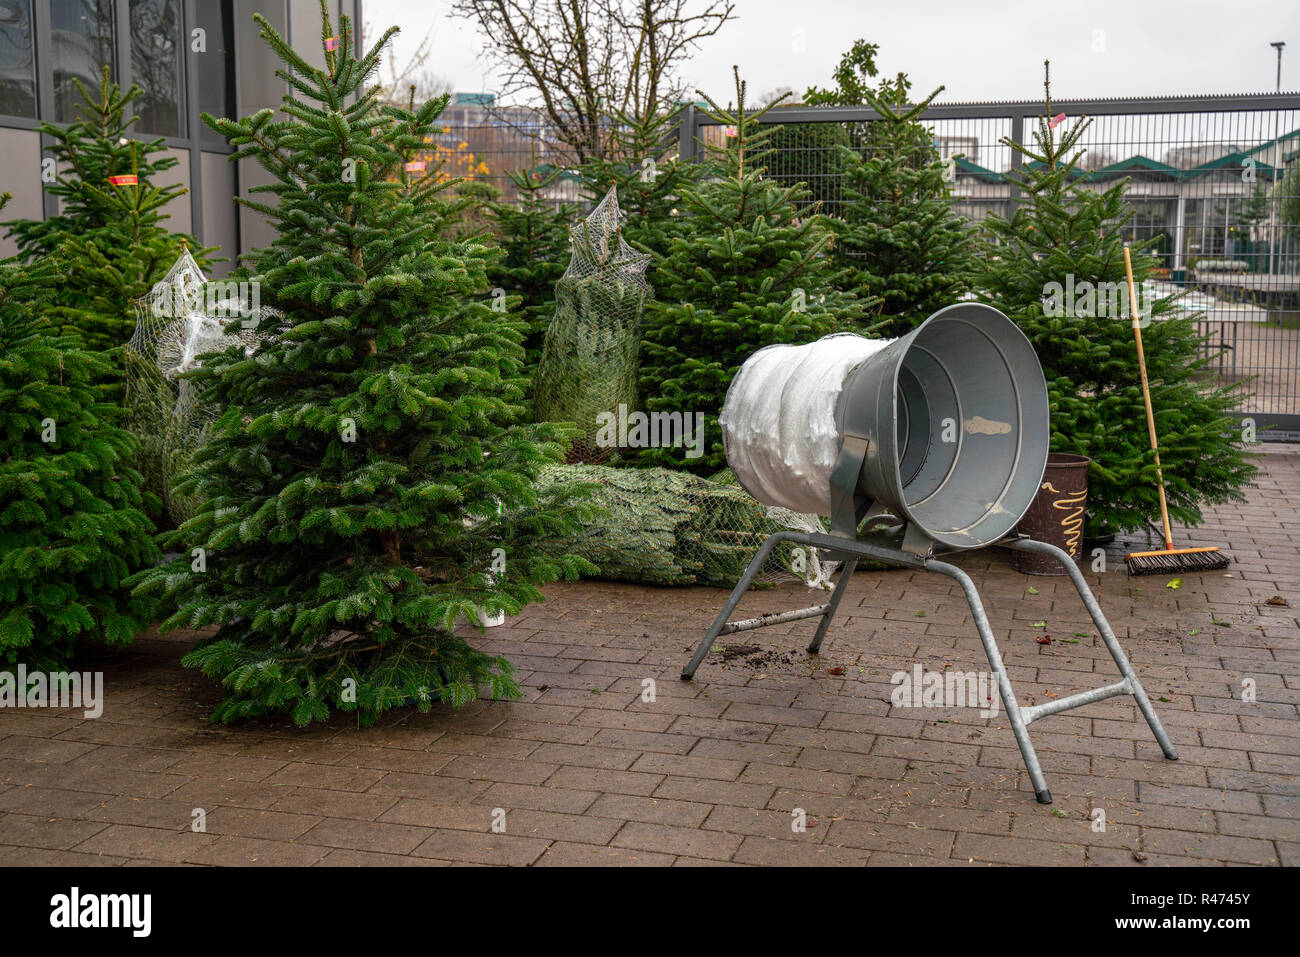 Christmas trees in pots for sale - Stock Image